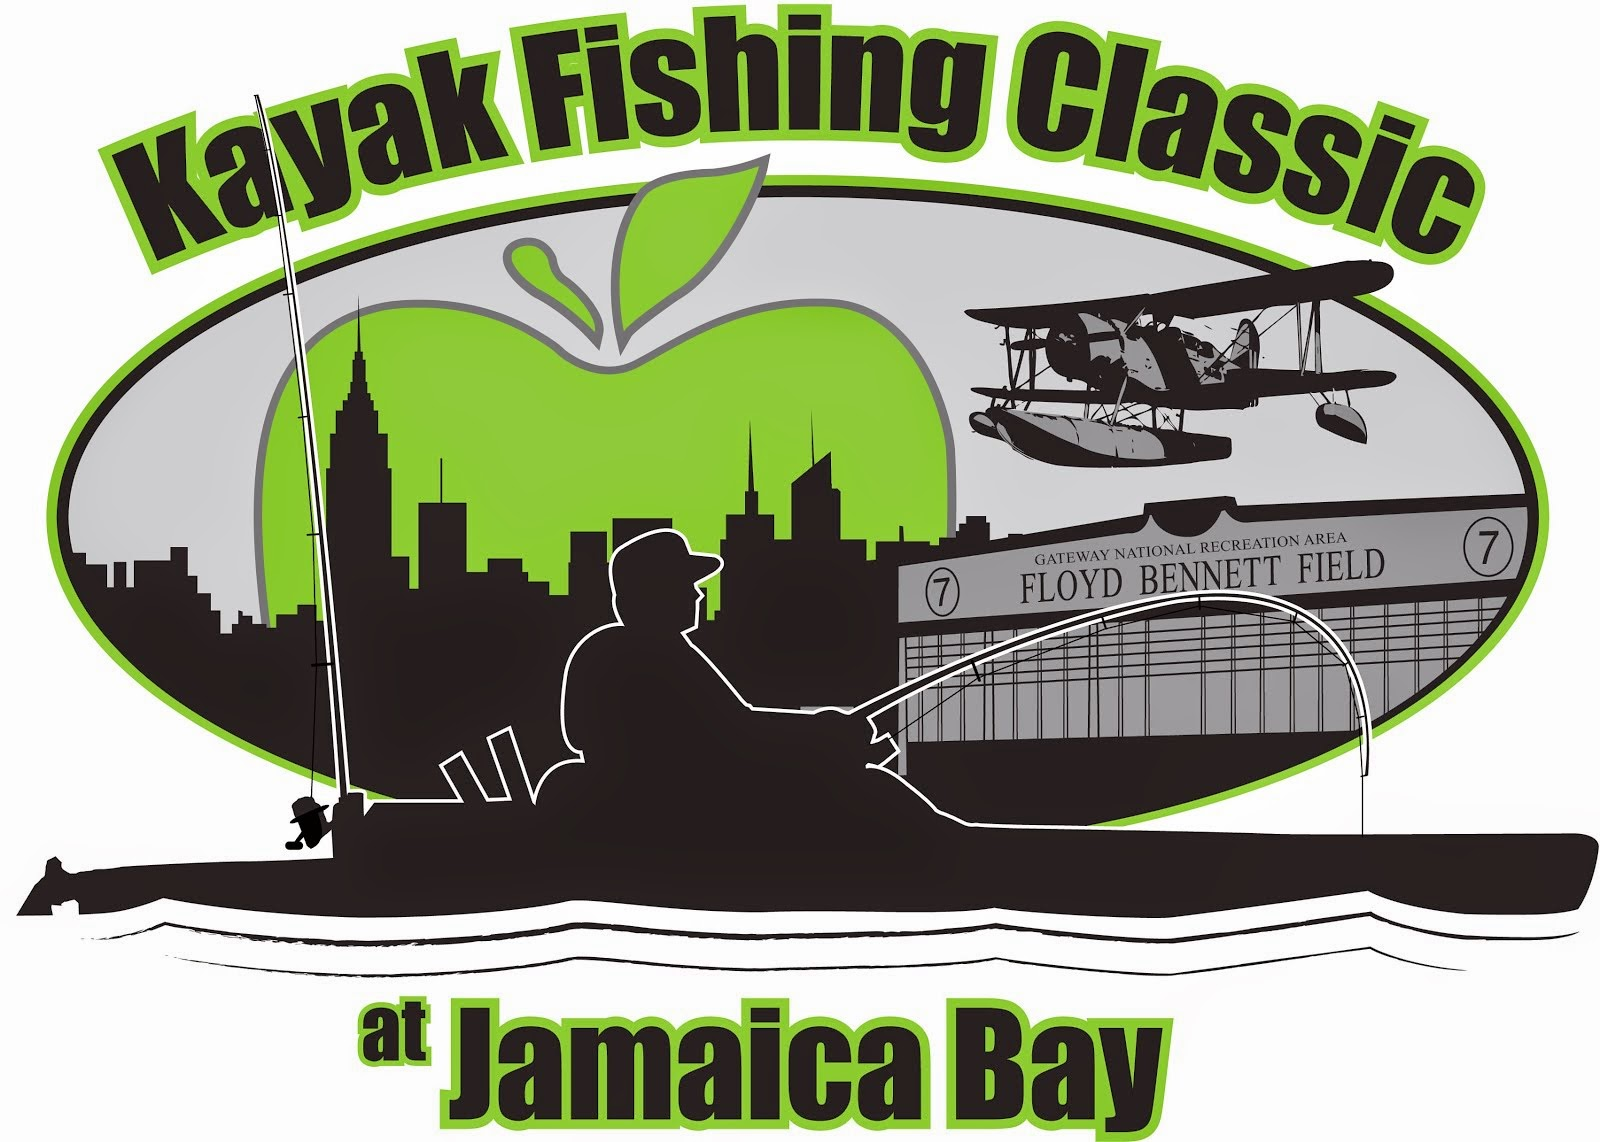 JAMAICA BAY KAYAK FISHING CLASSIC BY CAPTAIN KAYAK